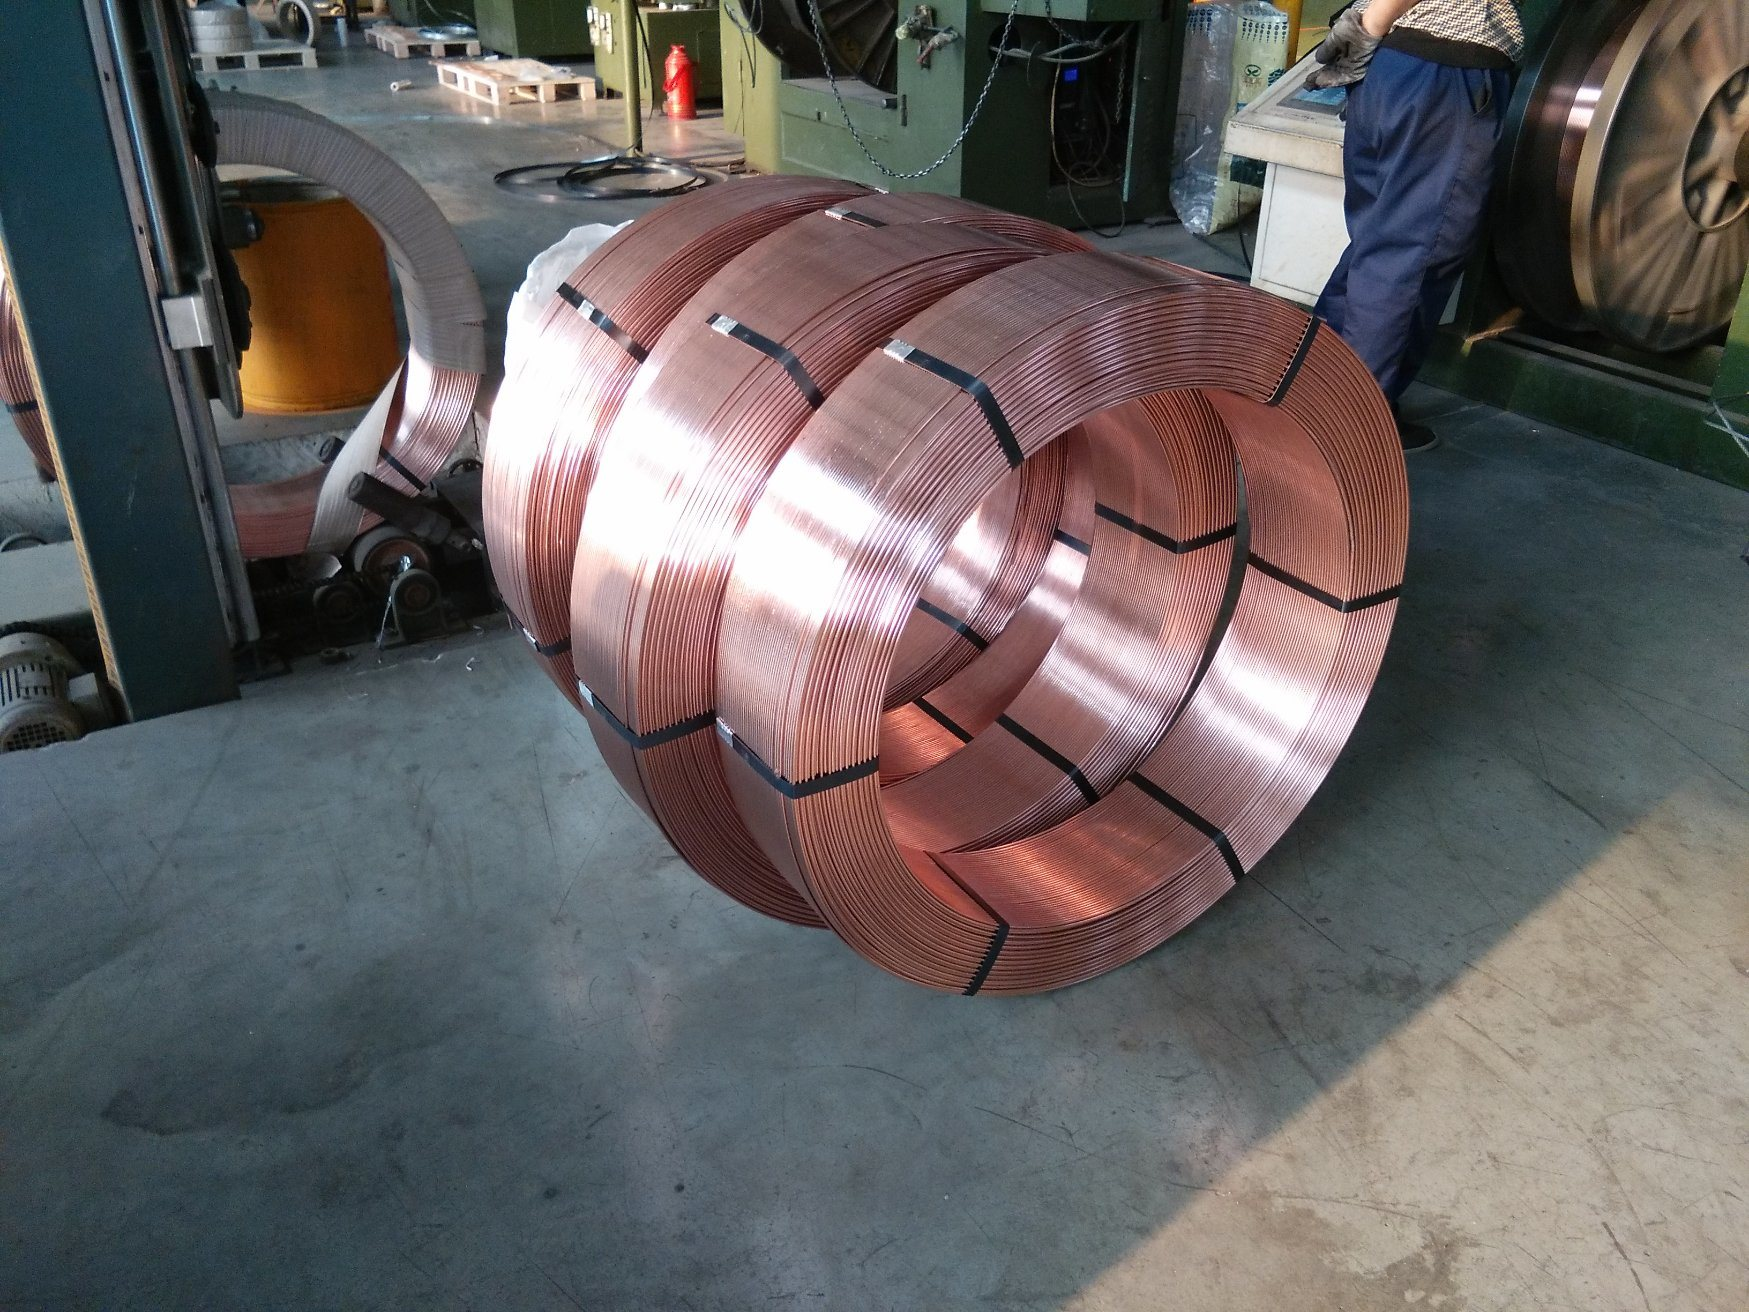 China Welding Rod Copper Coated Weldding Wire Submerged Arc Welding Wire China Cored Wire Flux Cored Wire